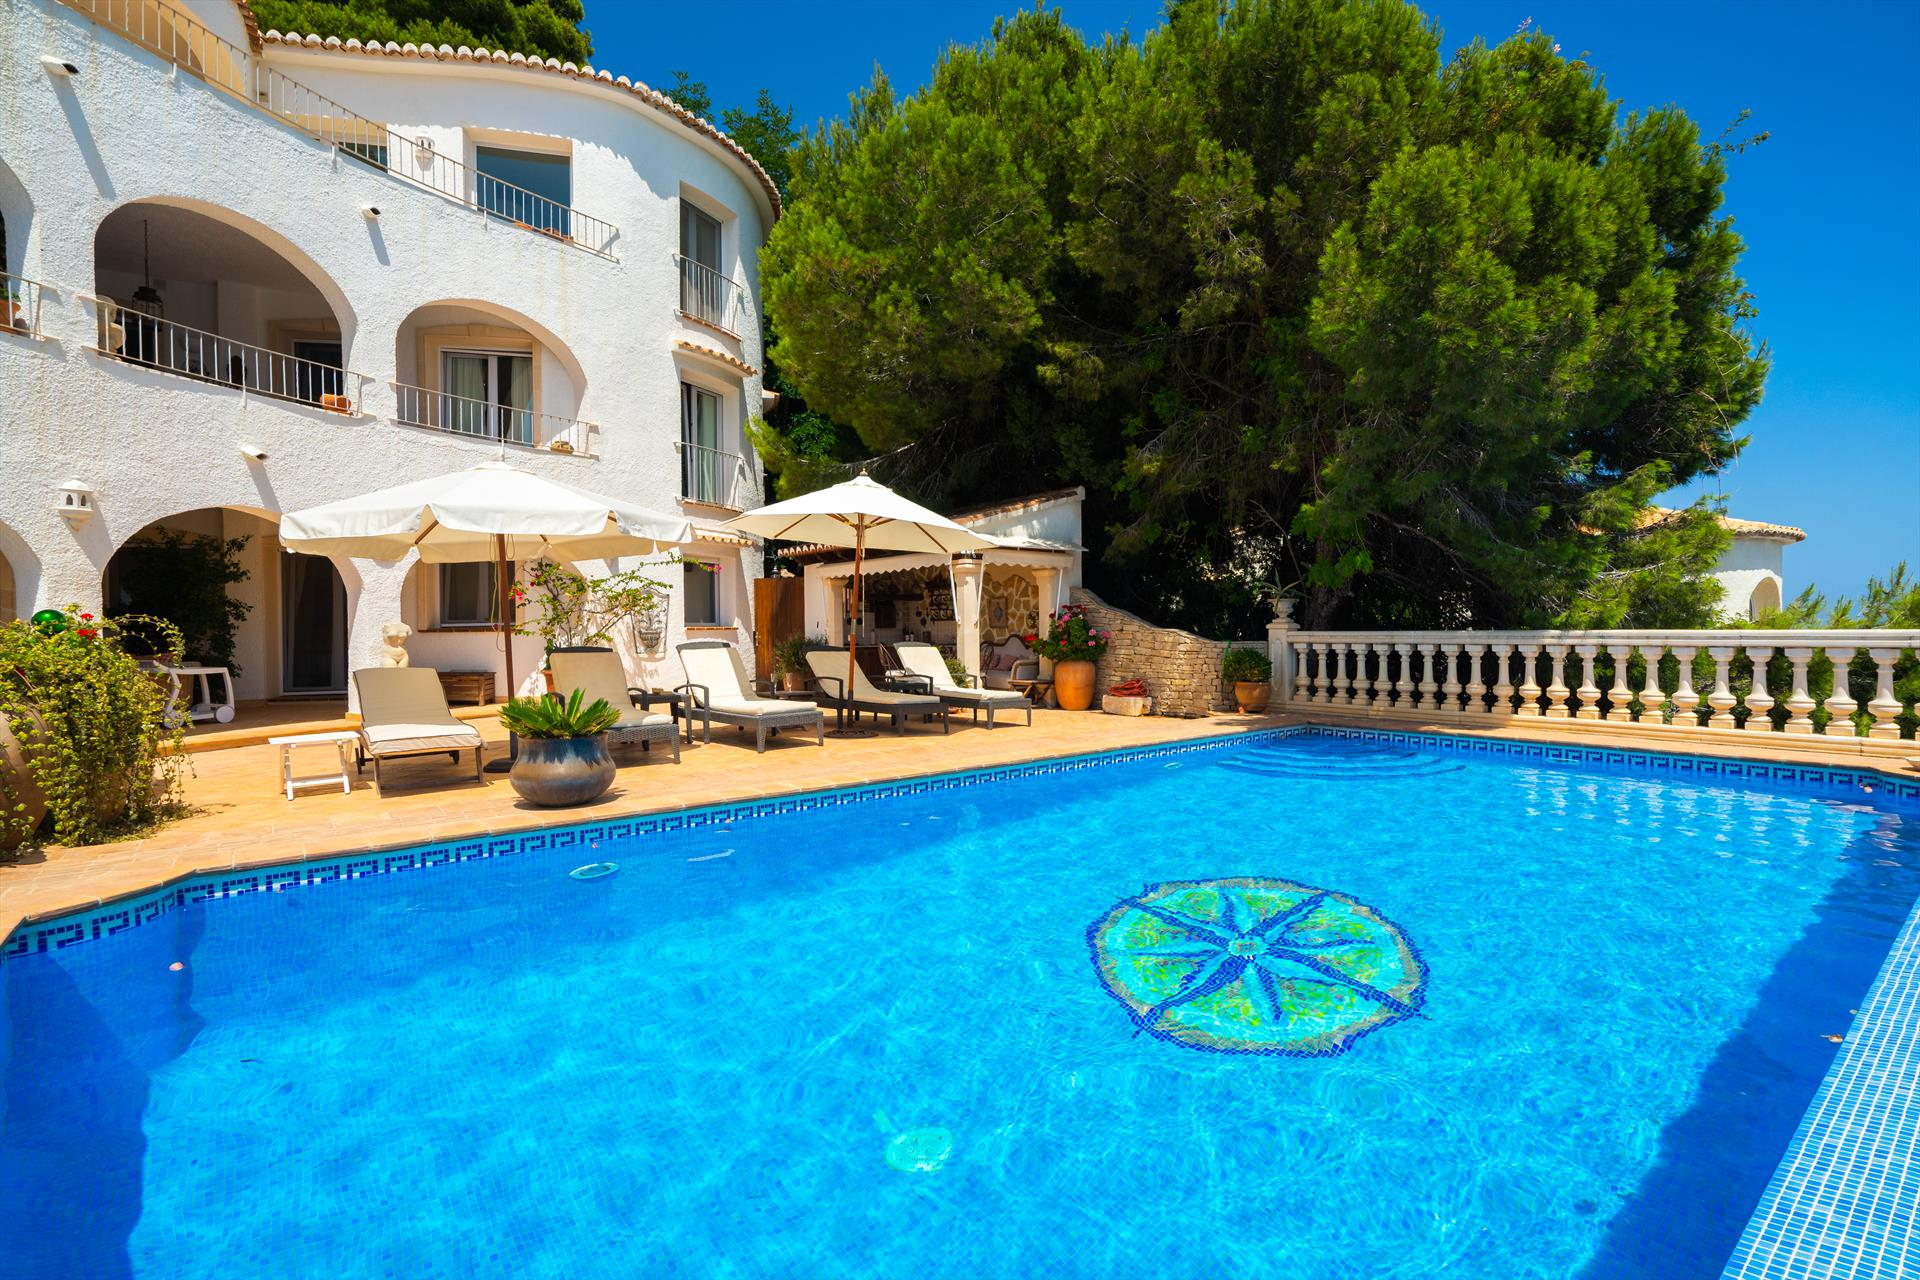 El Paraiso 12 pax, Large and classic villa in Javea, on the Costa Blanca, Spain  with private pool for 12 persons.....